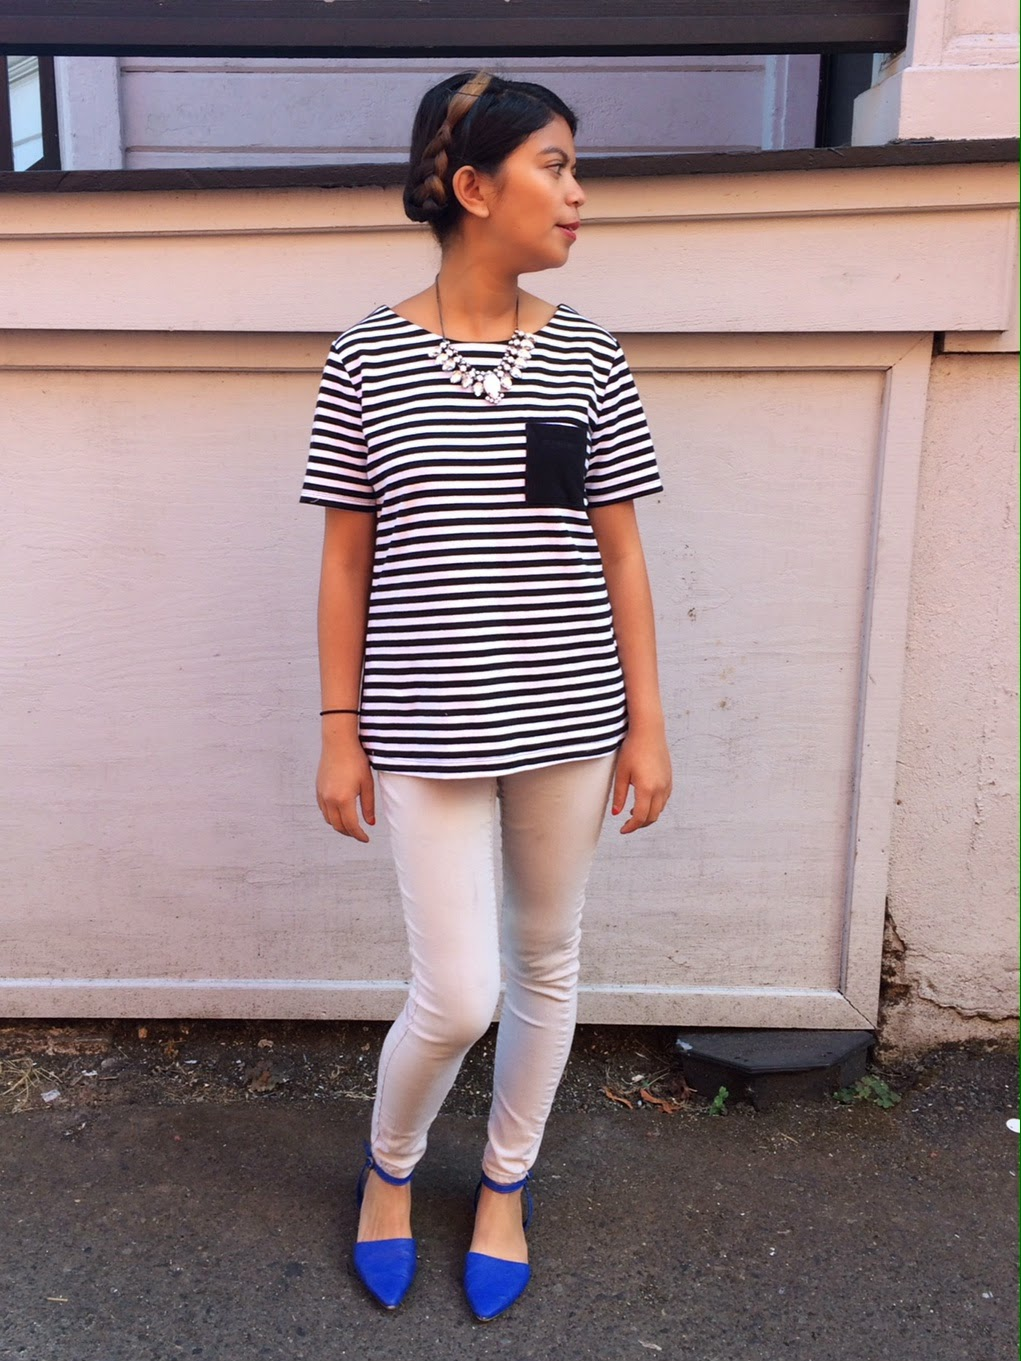 old navy striped shirt, black and white shirt, striped shirt, old navy, gray jeans, cobalt blue flats, outfit of the day, fashion blogger, portland blogger, affordable fashion, i'm on a budget